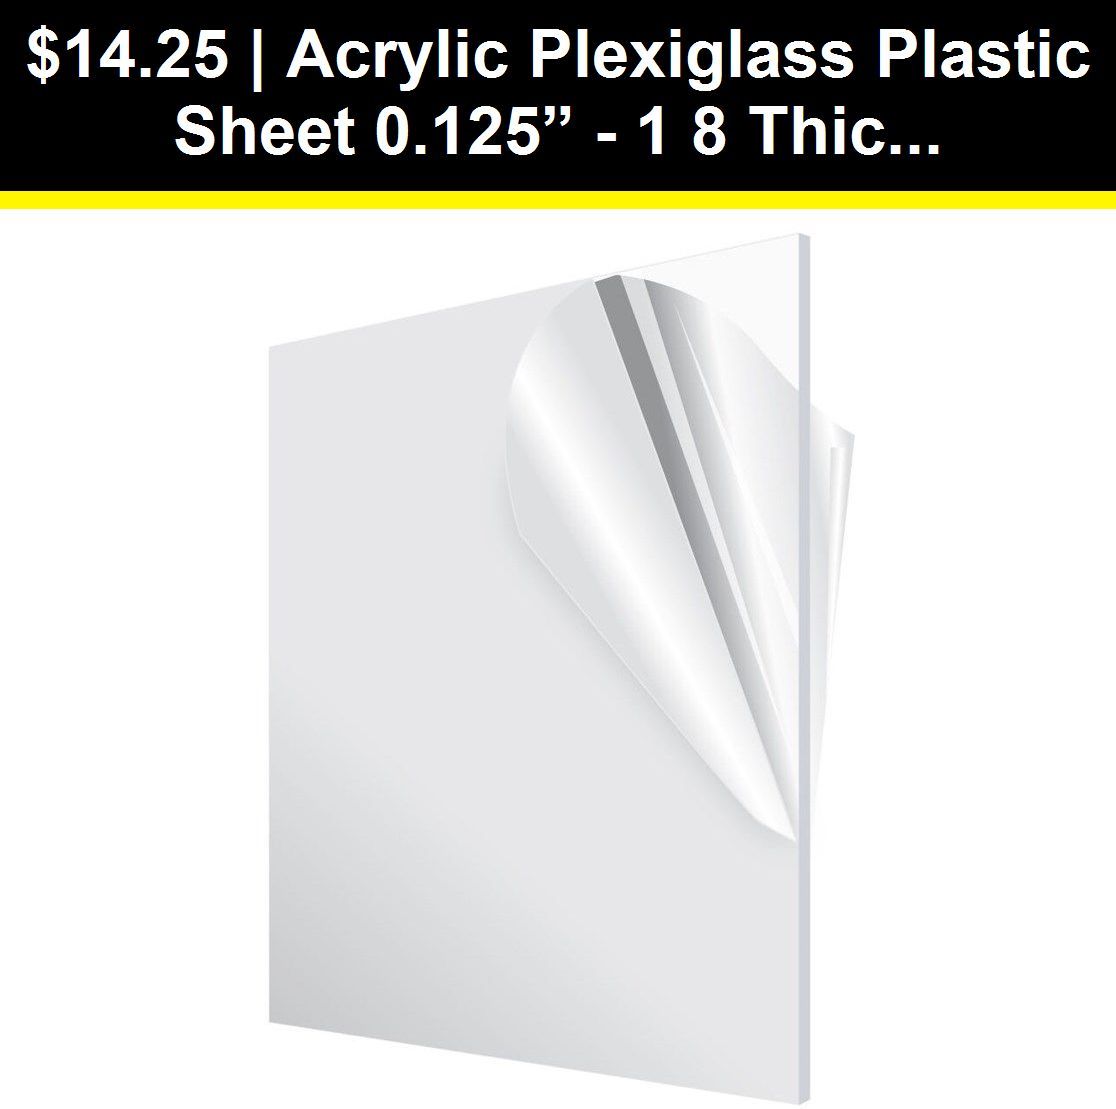 Acrylic Plexiglass Plastic Sheet 0 125 1 8 Thick You Pick The Size Clear Plastic Sheets Plexiglass Sheet